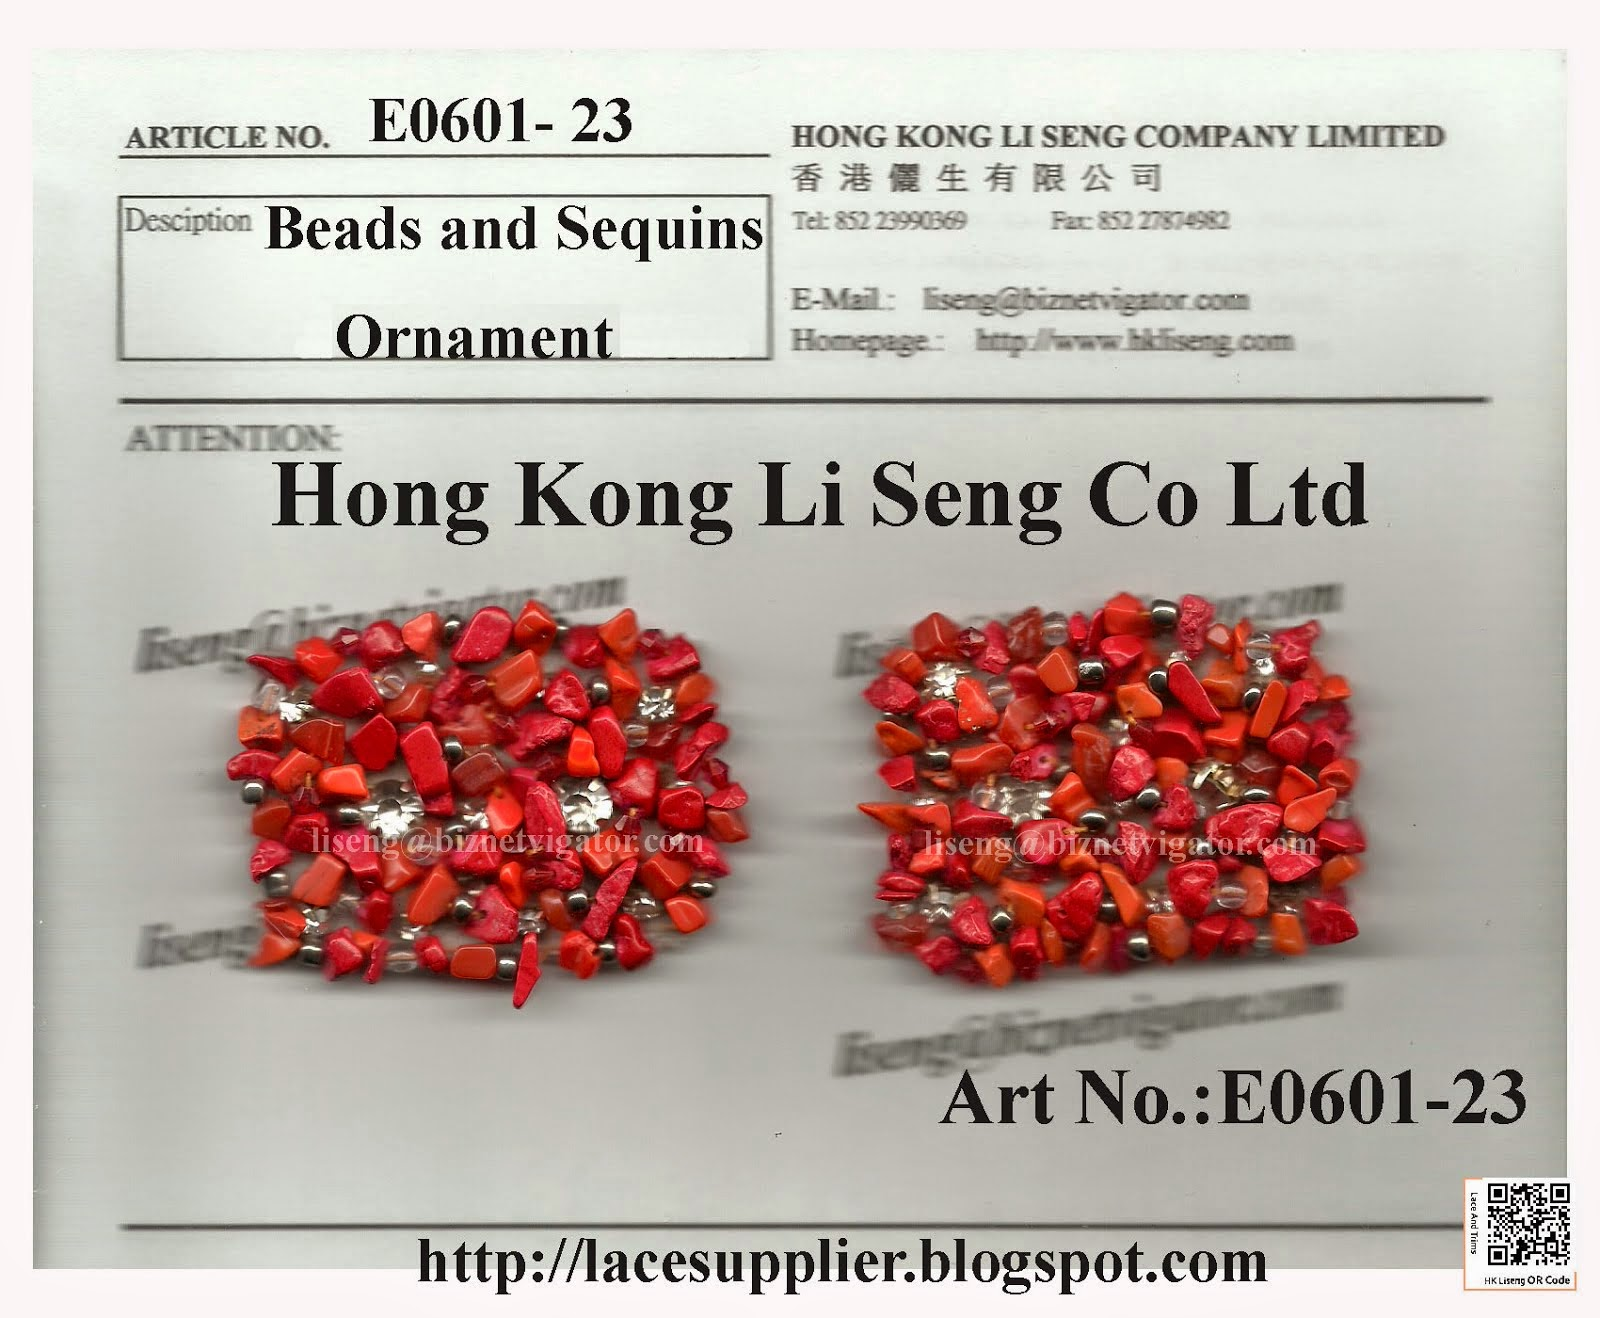 Beads and Sequins Ornament Manufacturer Wholesaler Supplier - Hong Kong Li Seng Co Ltd